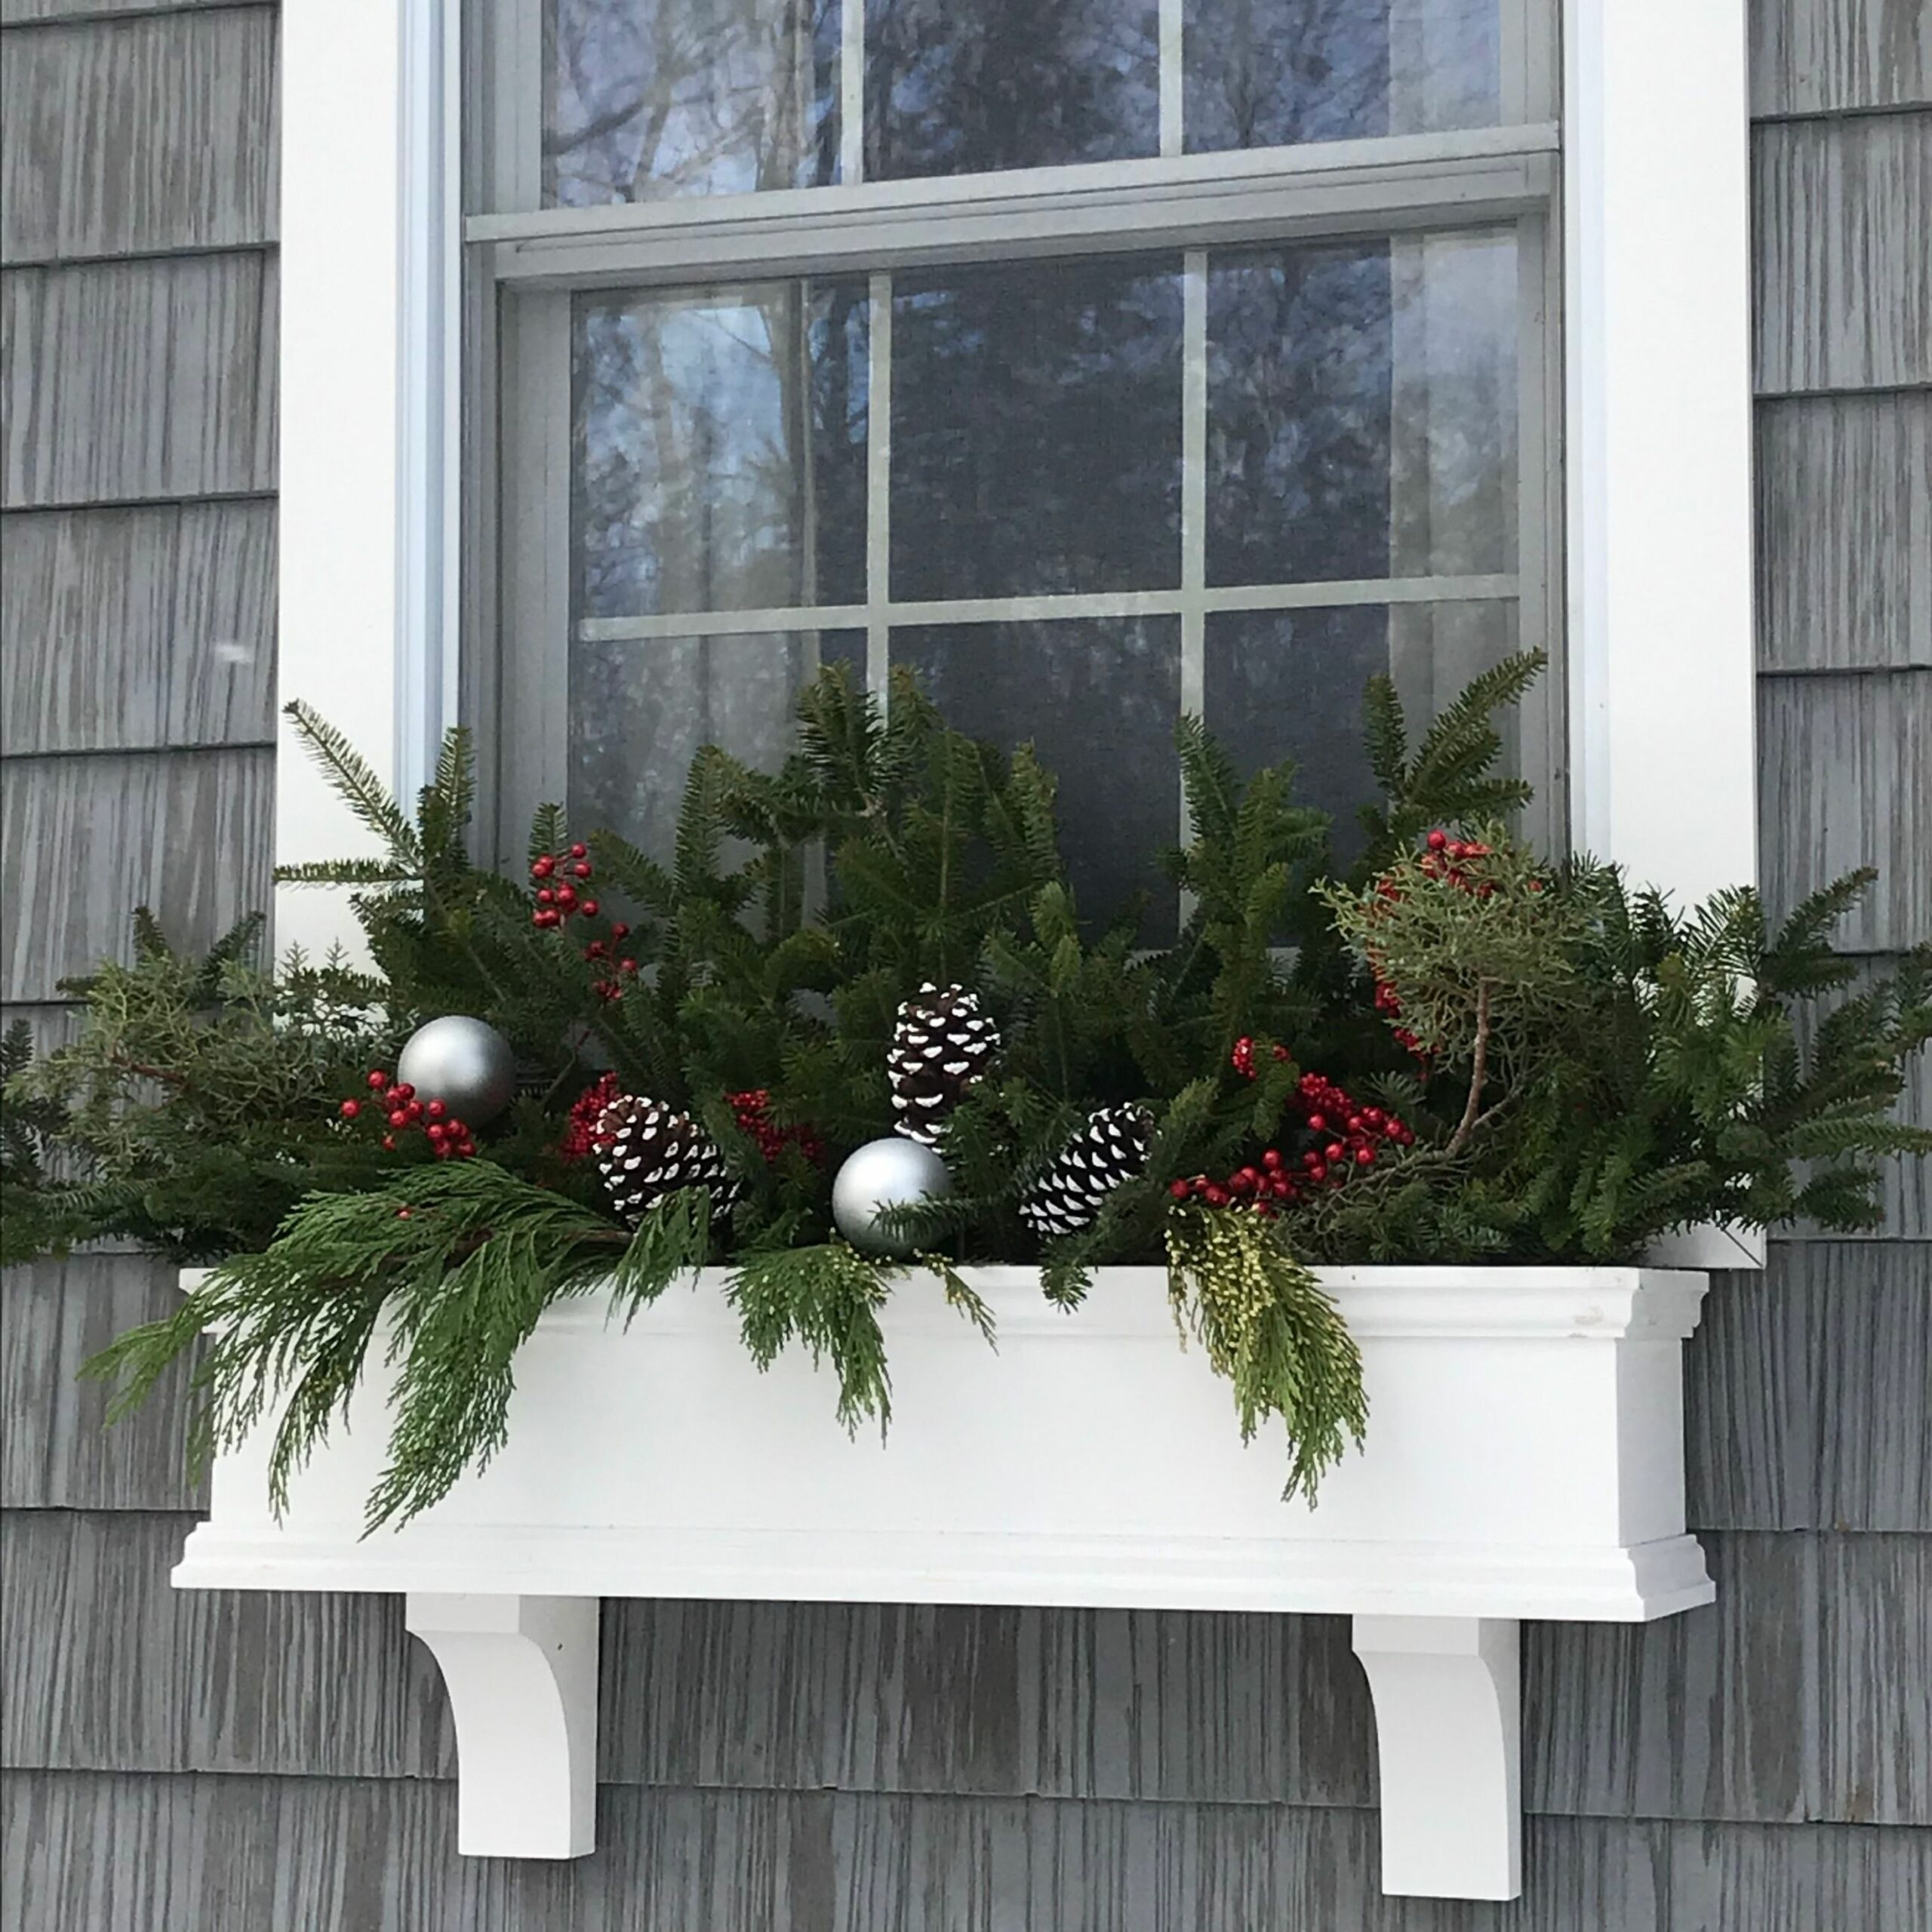 Pin by Maureen DeRoy on Window Box (With images) | Christmas porch ..